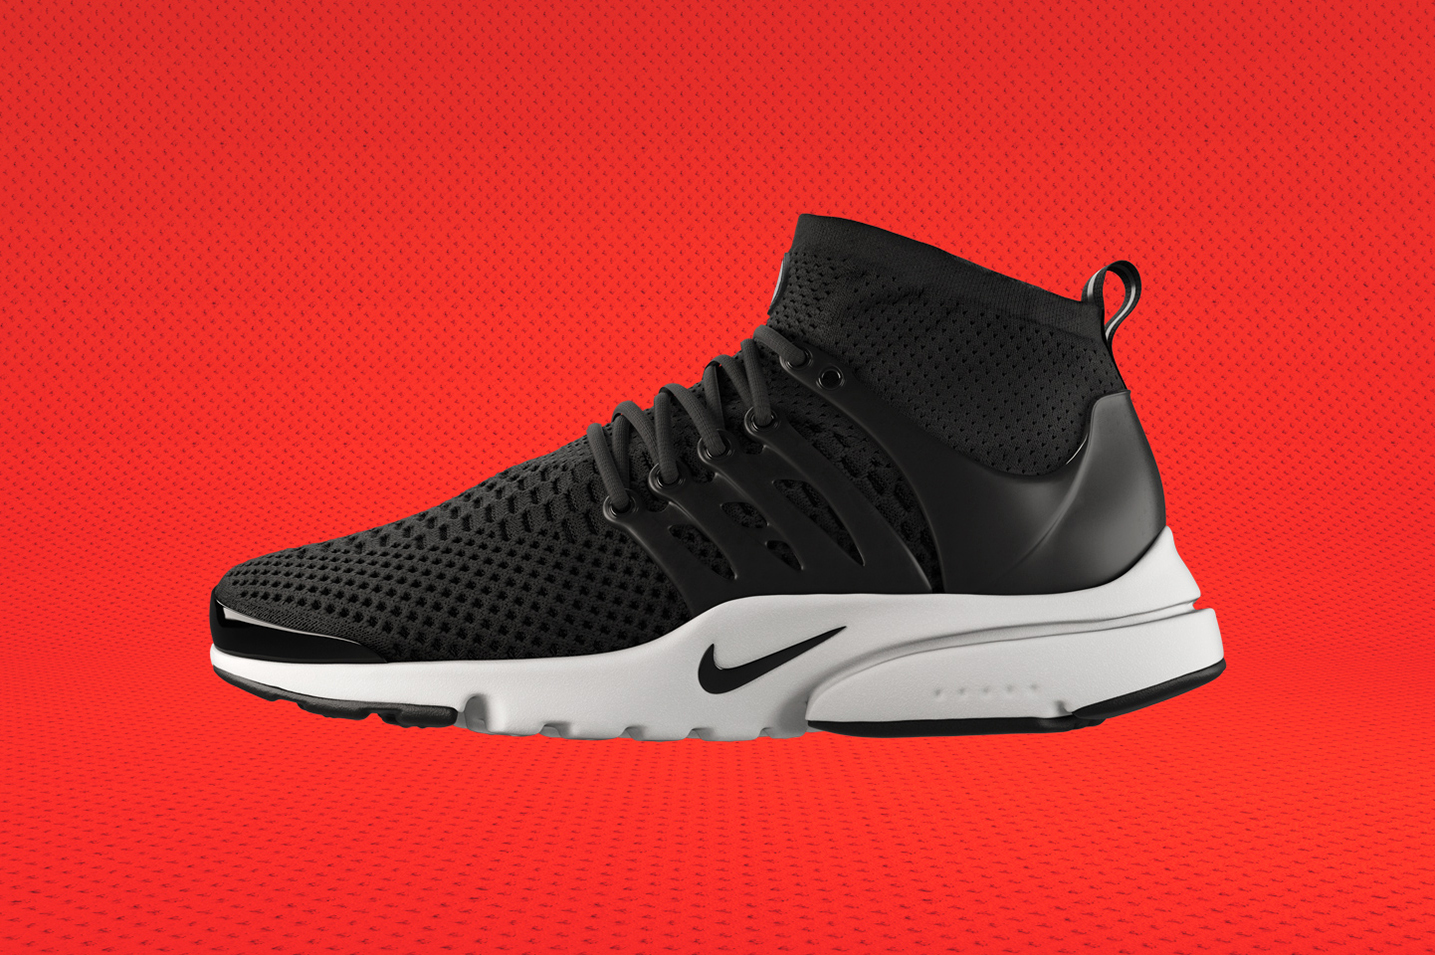 new product b52dd 6e2f1 A sport-utility style of the Nike Air Presto is slated to release later this